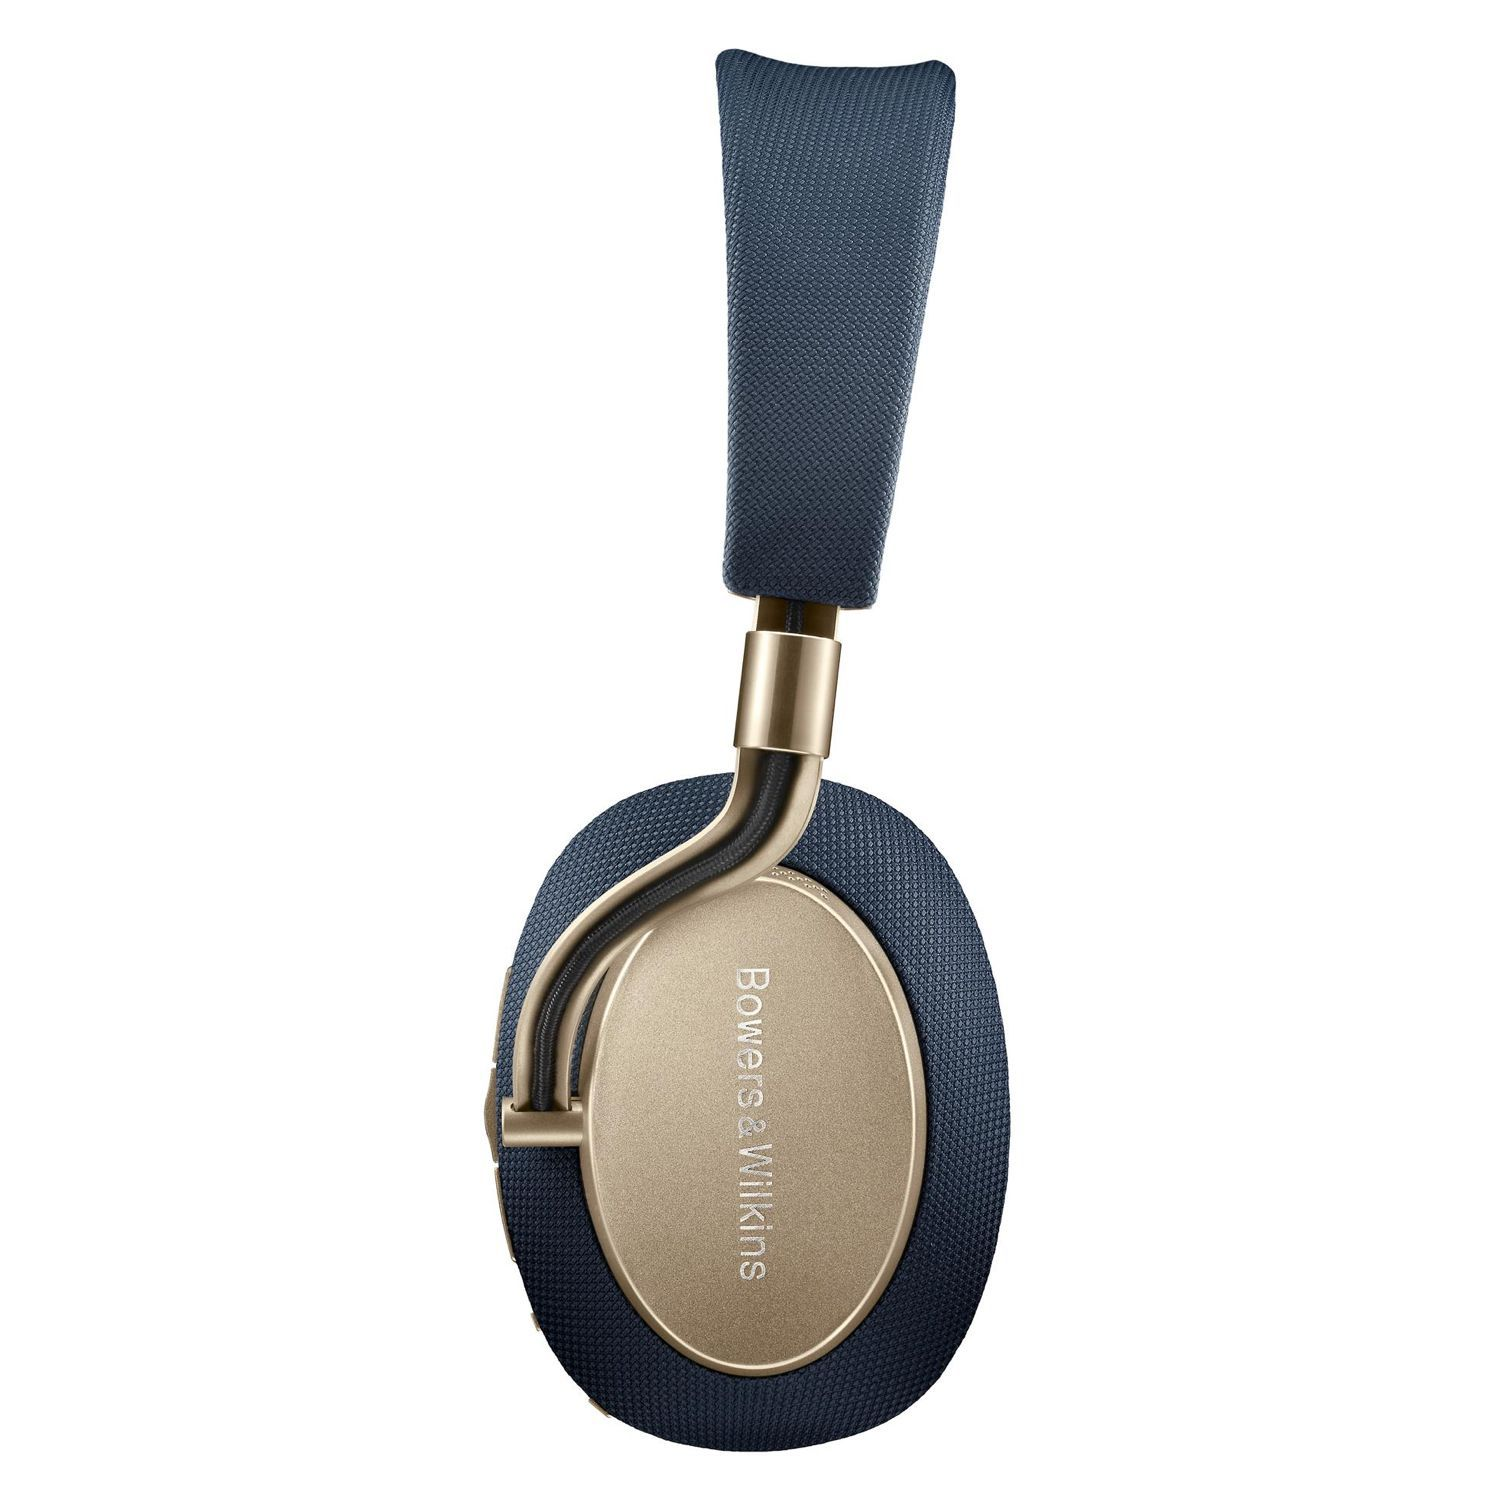 Bowers & Wilkins PX Wireless Noise-Canceling Headphones